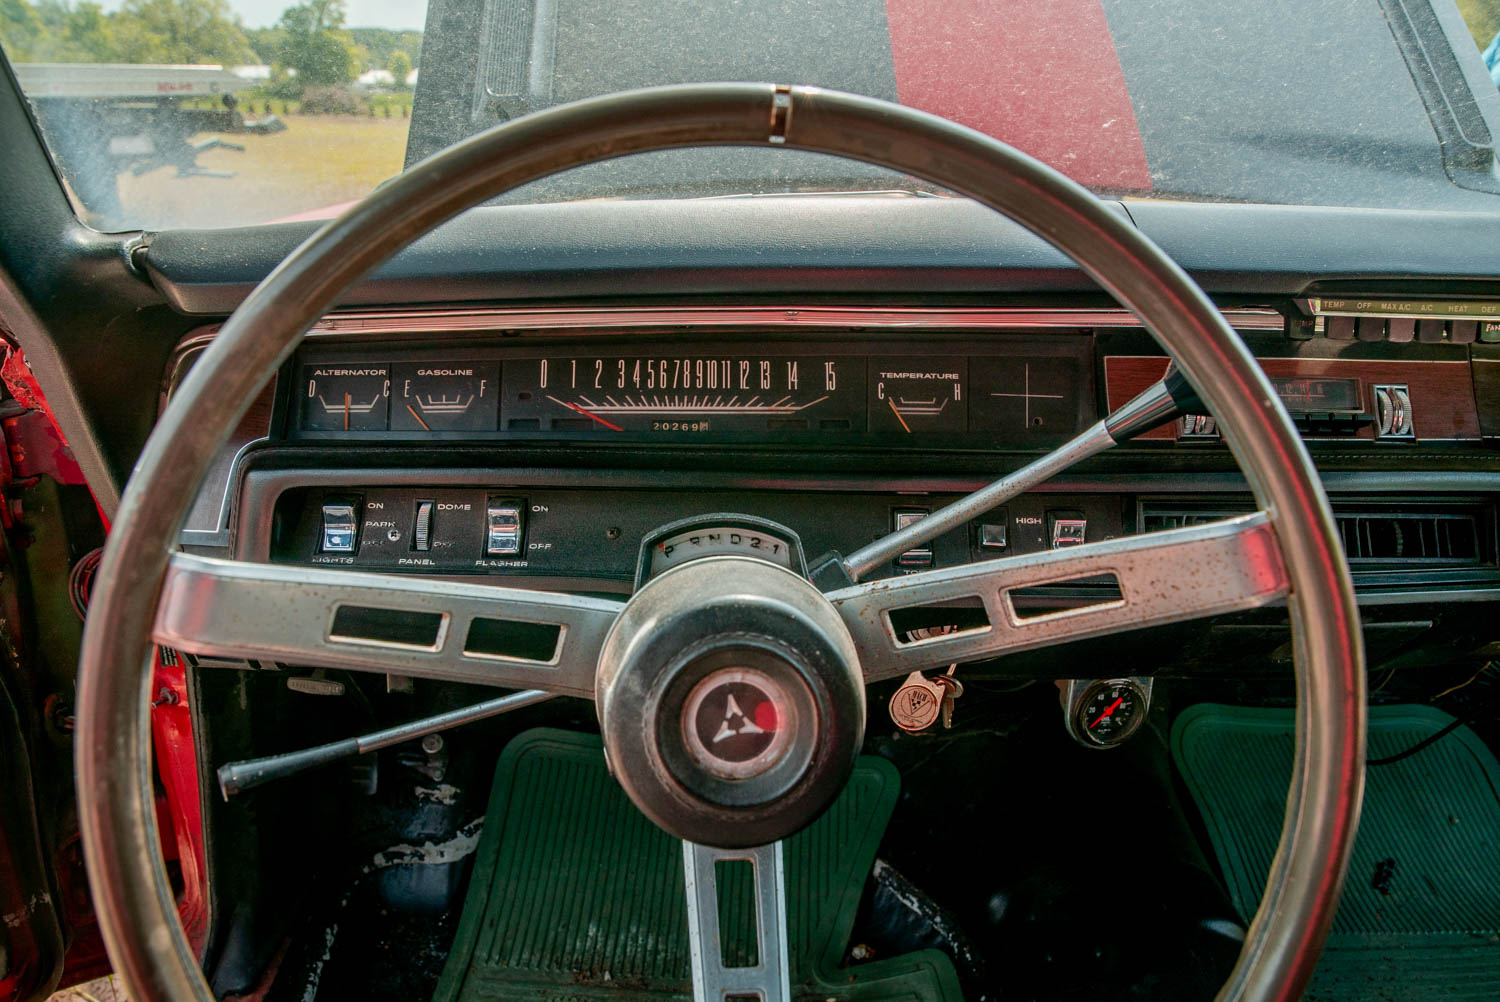 1969 Plymouth GTX steering wheel